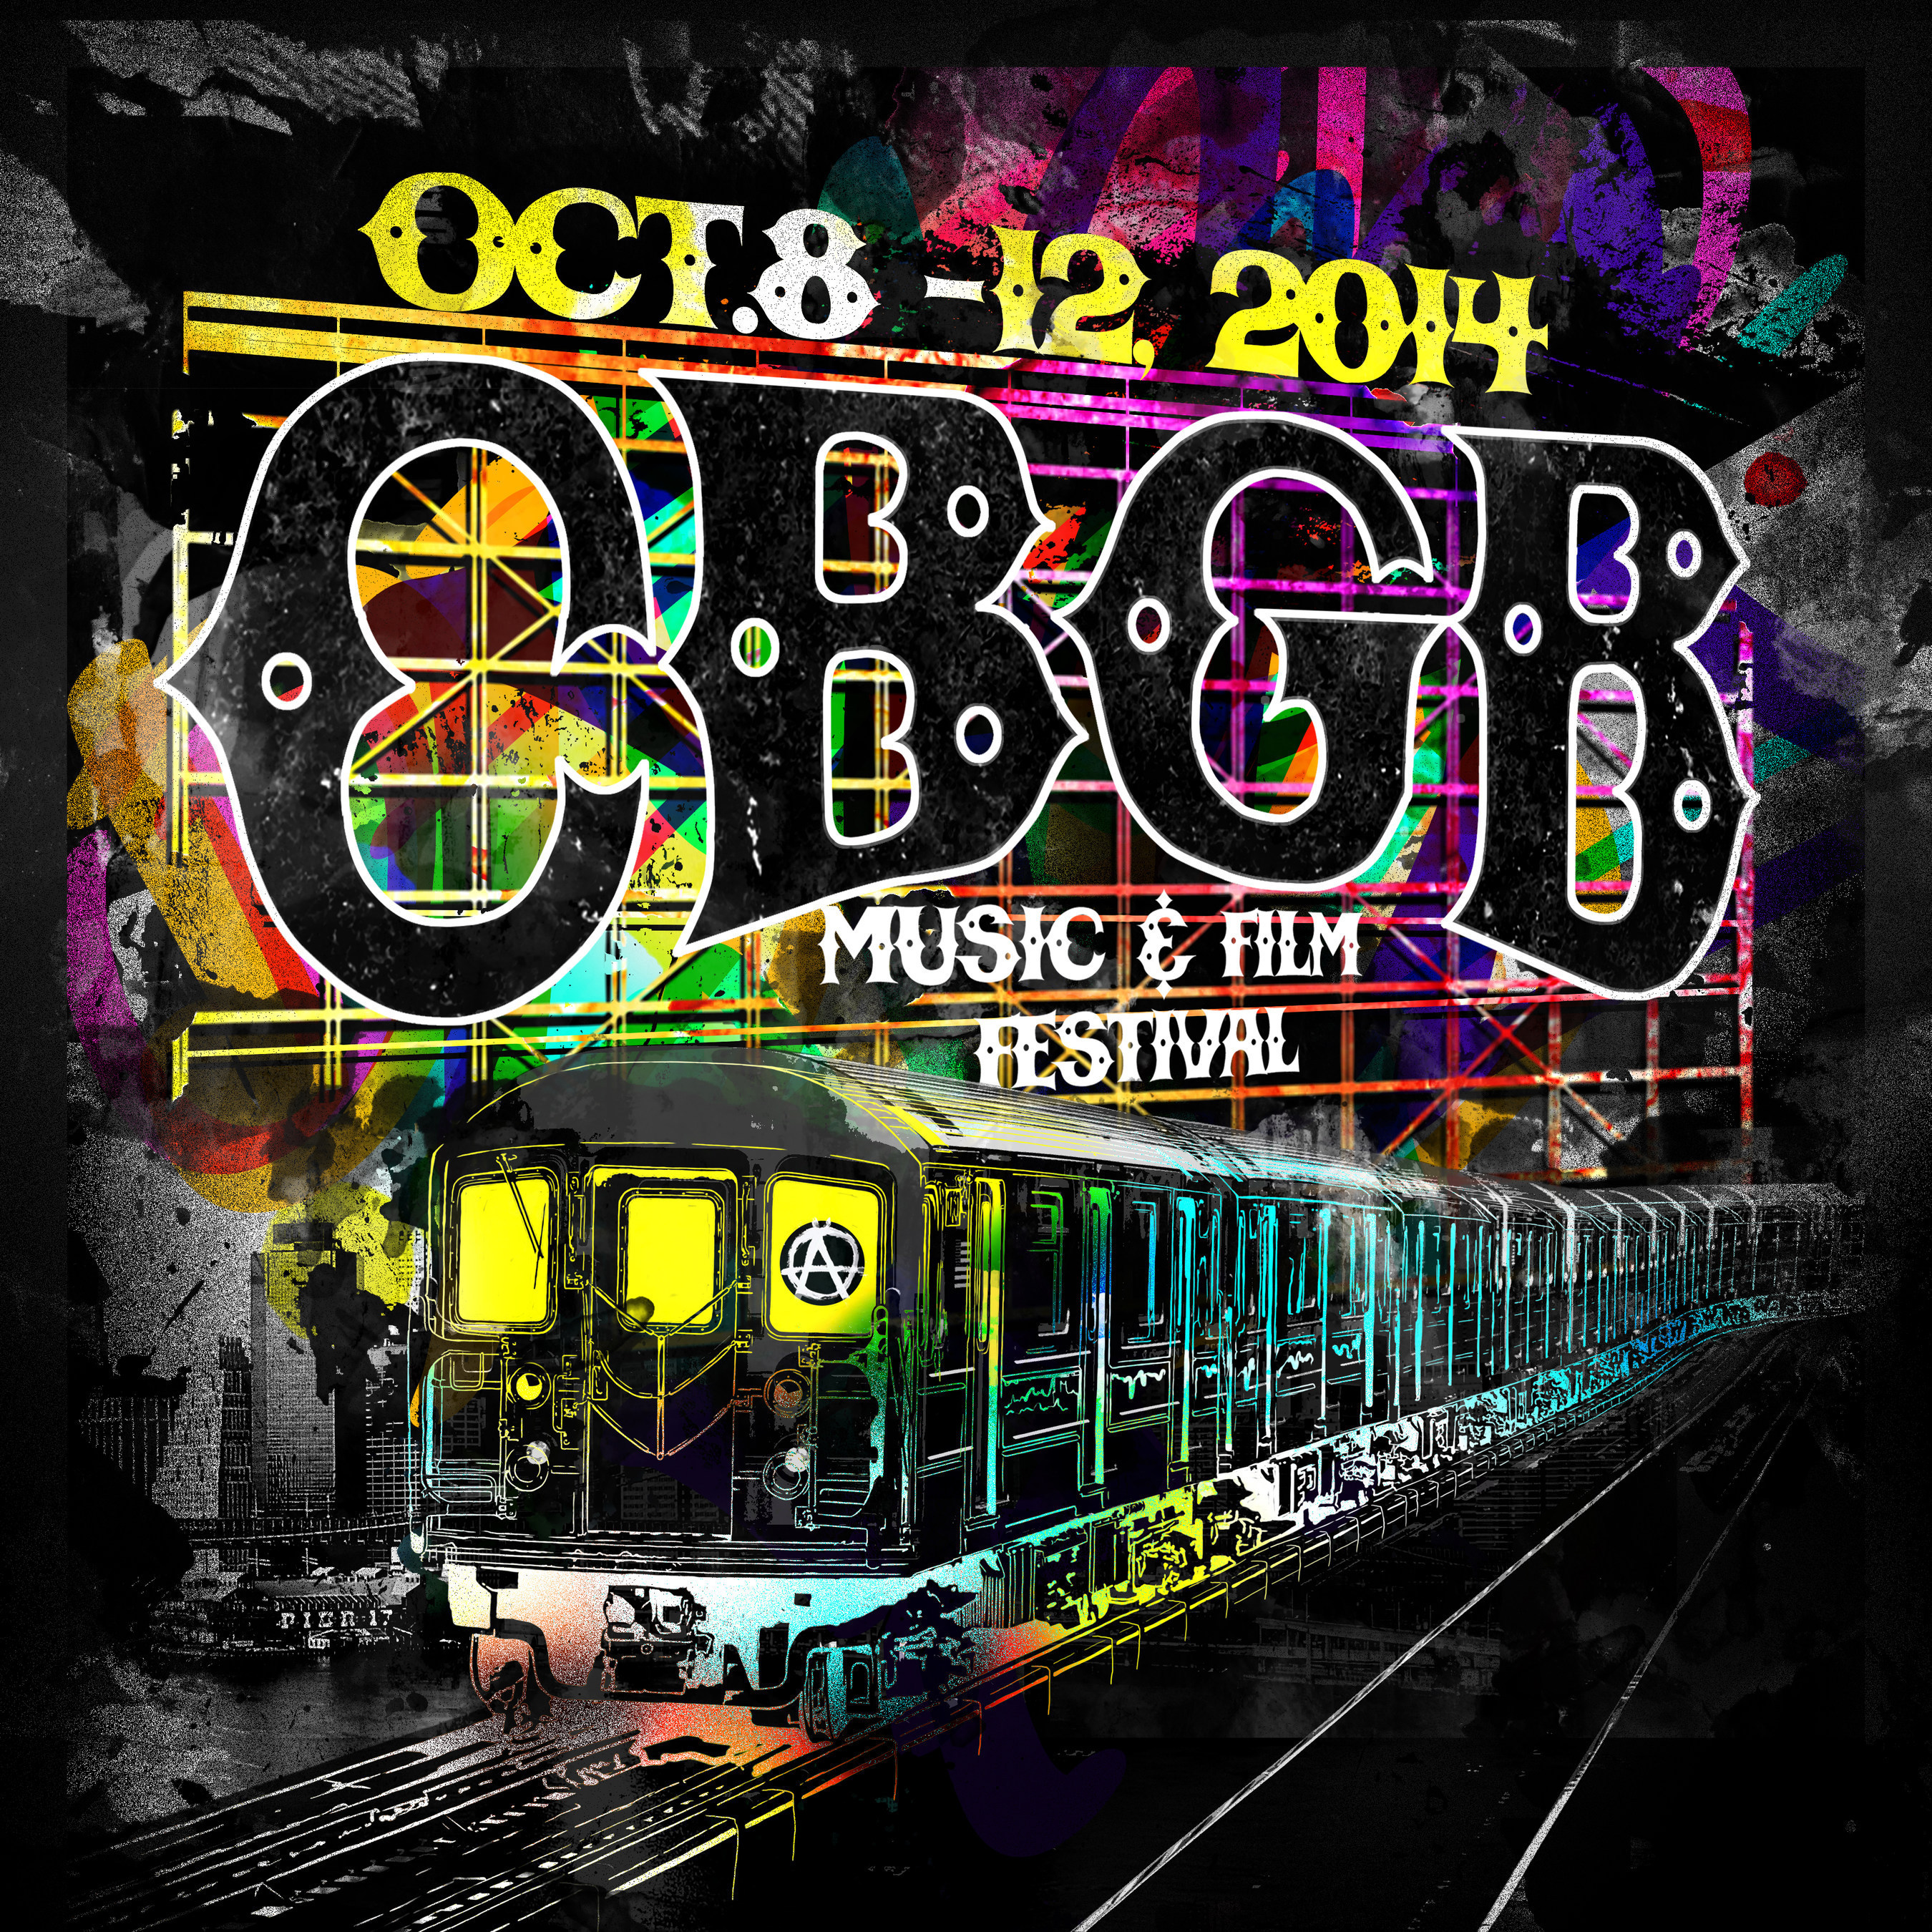 CBGB Announces 3rd Annual CBGB Music & Film Festival This October